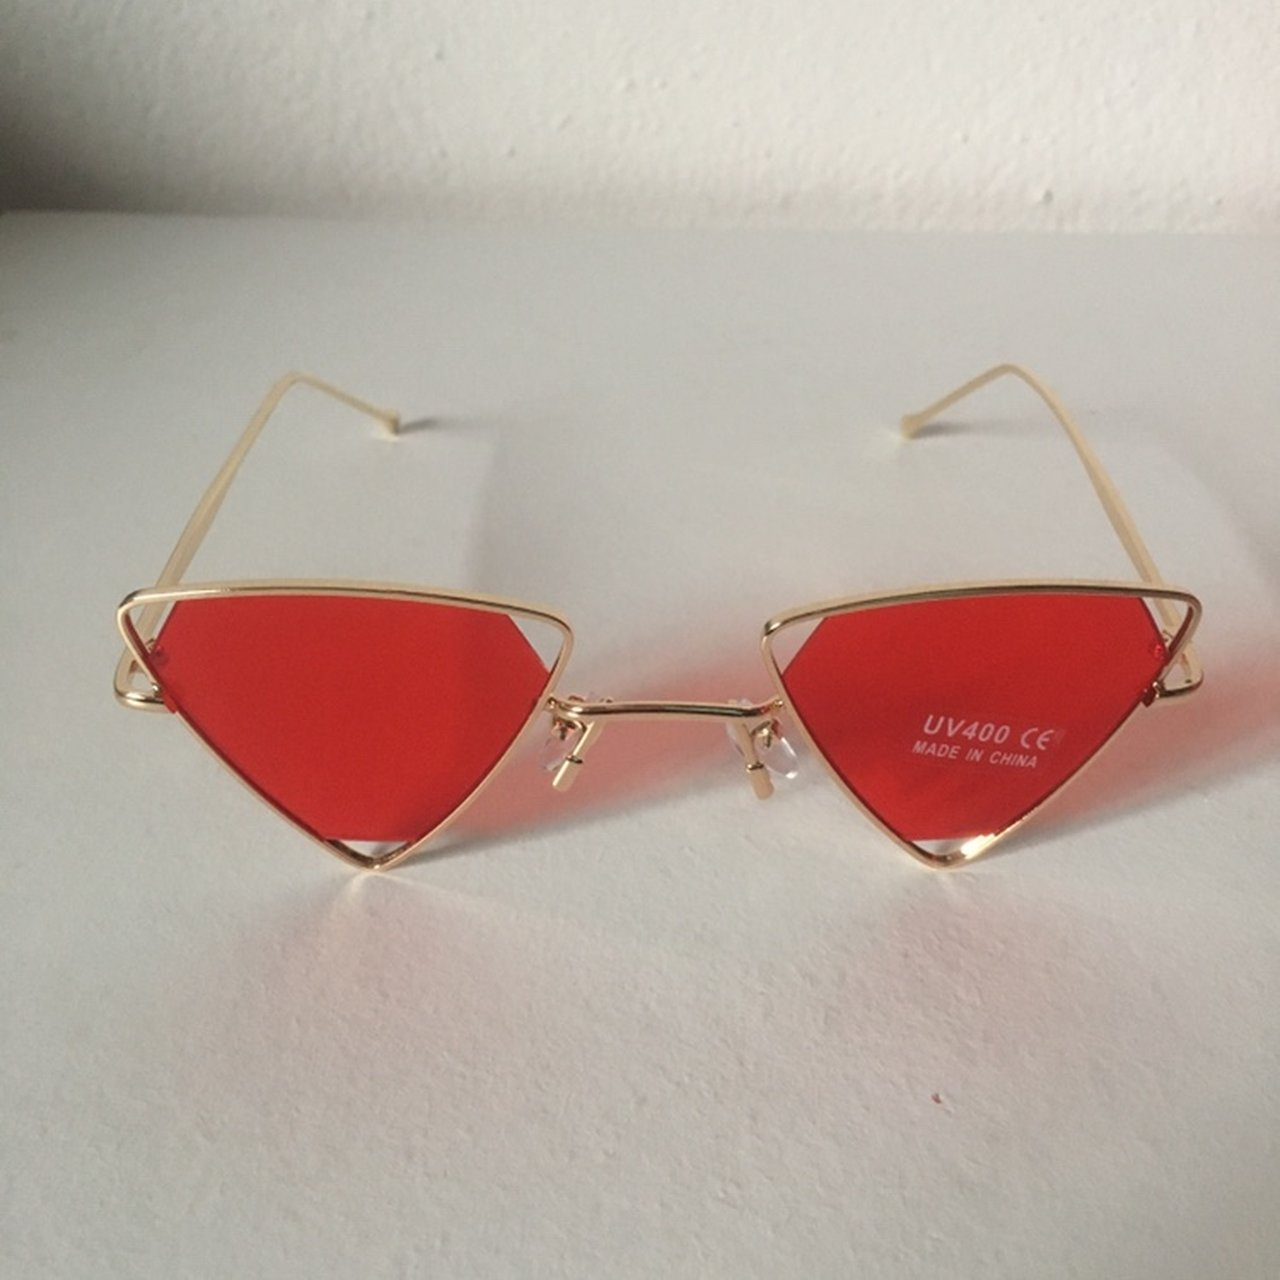 29921344bf Metal triangle sunglasses ▫️Gold frame red tint 2-3 days Uk - Depop